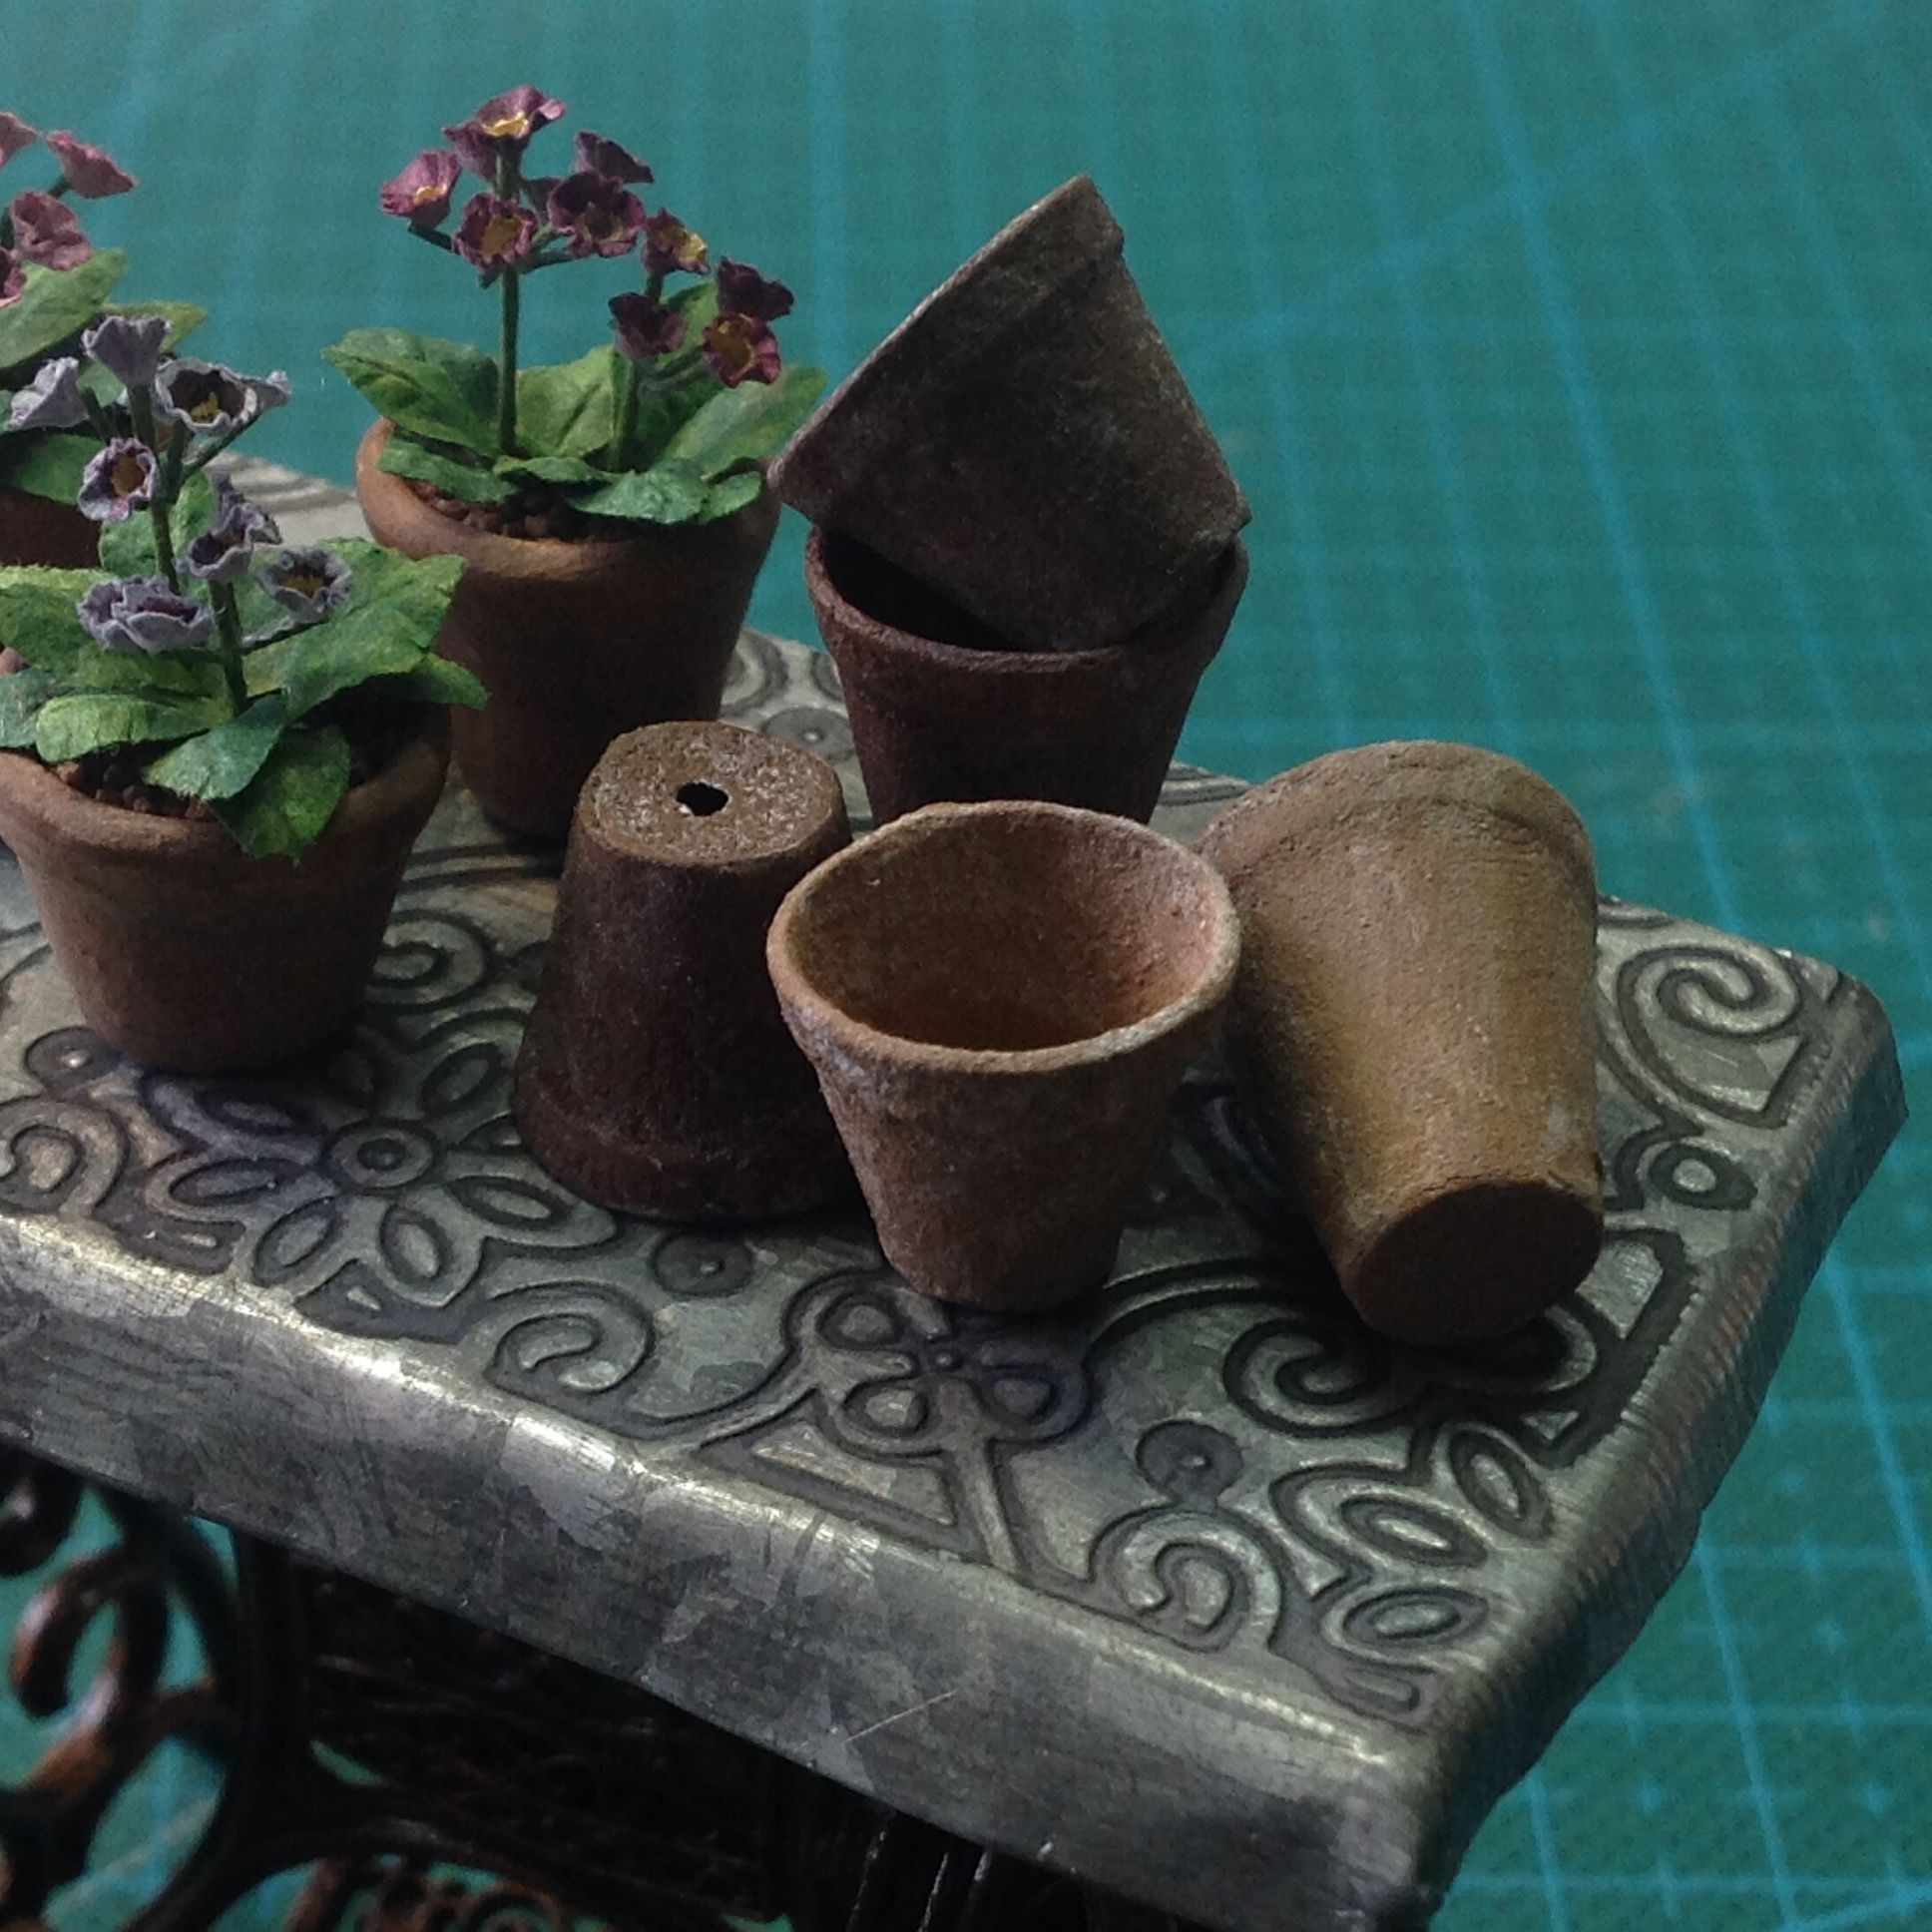 Auriculas And Clay Pots Miniatyrer Blommor Vaxter